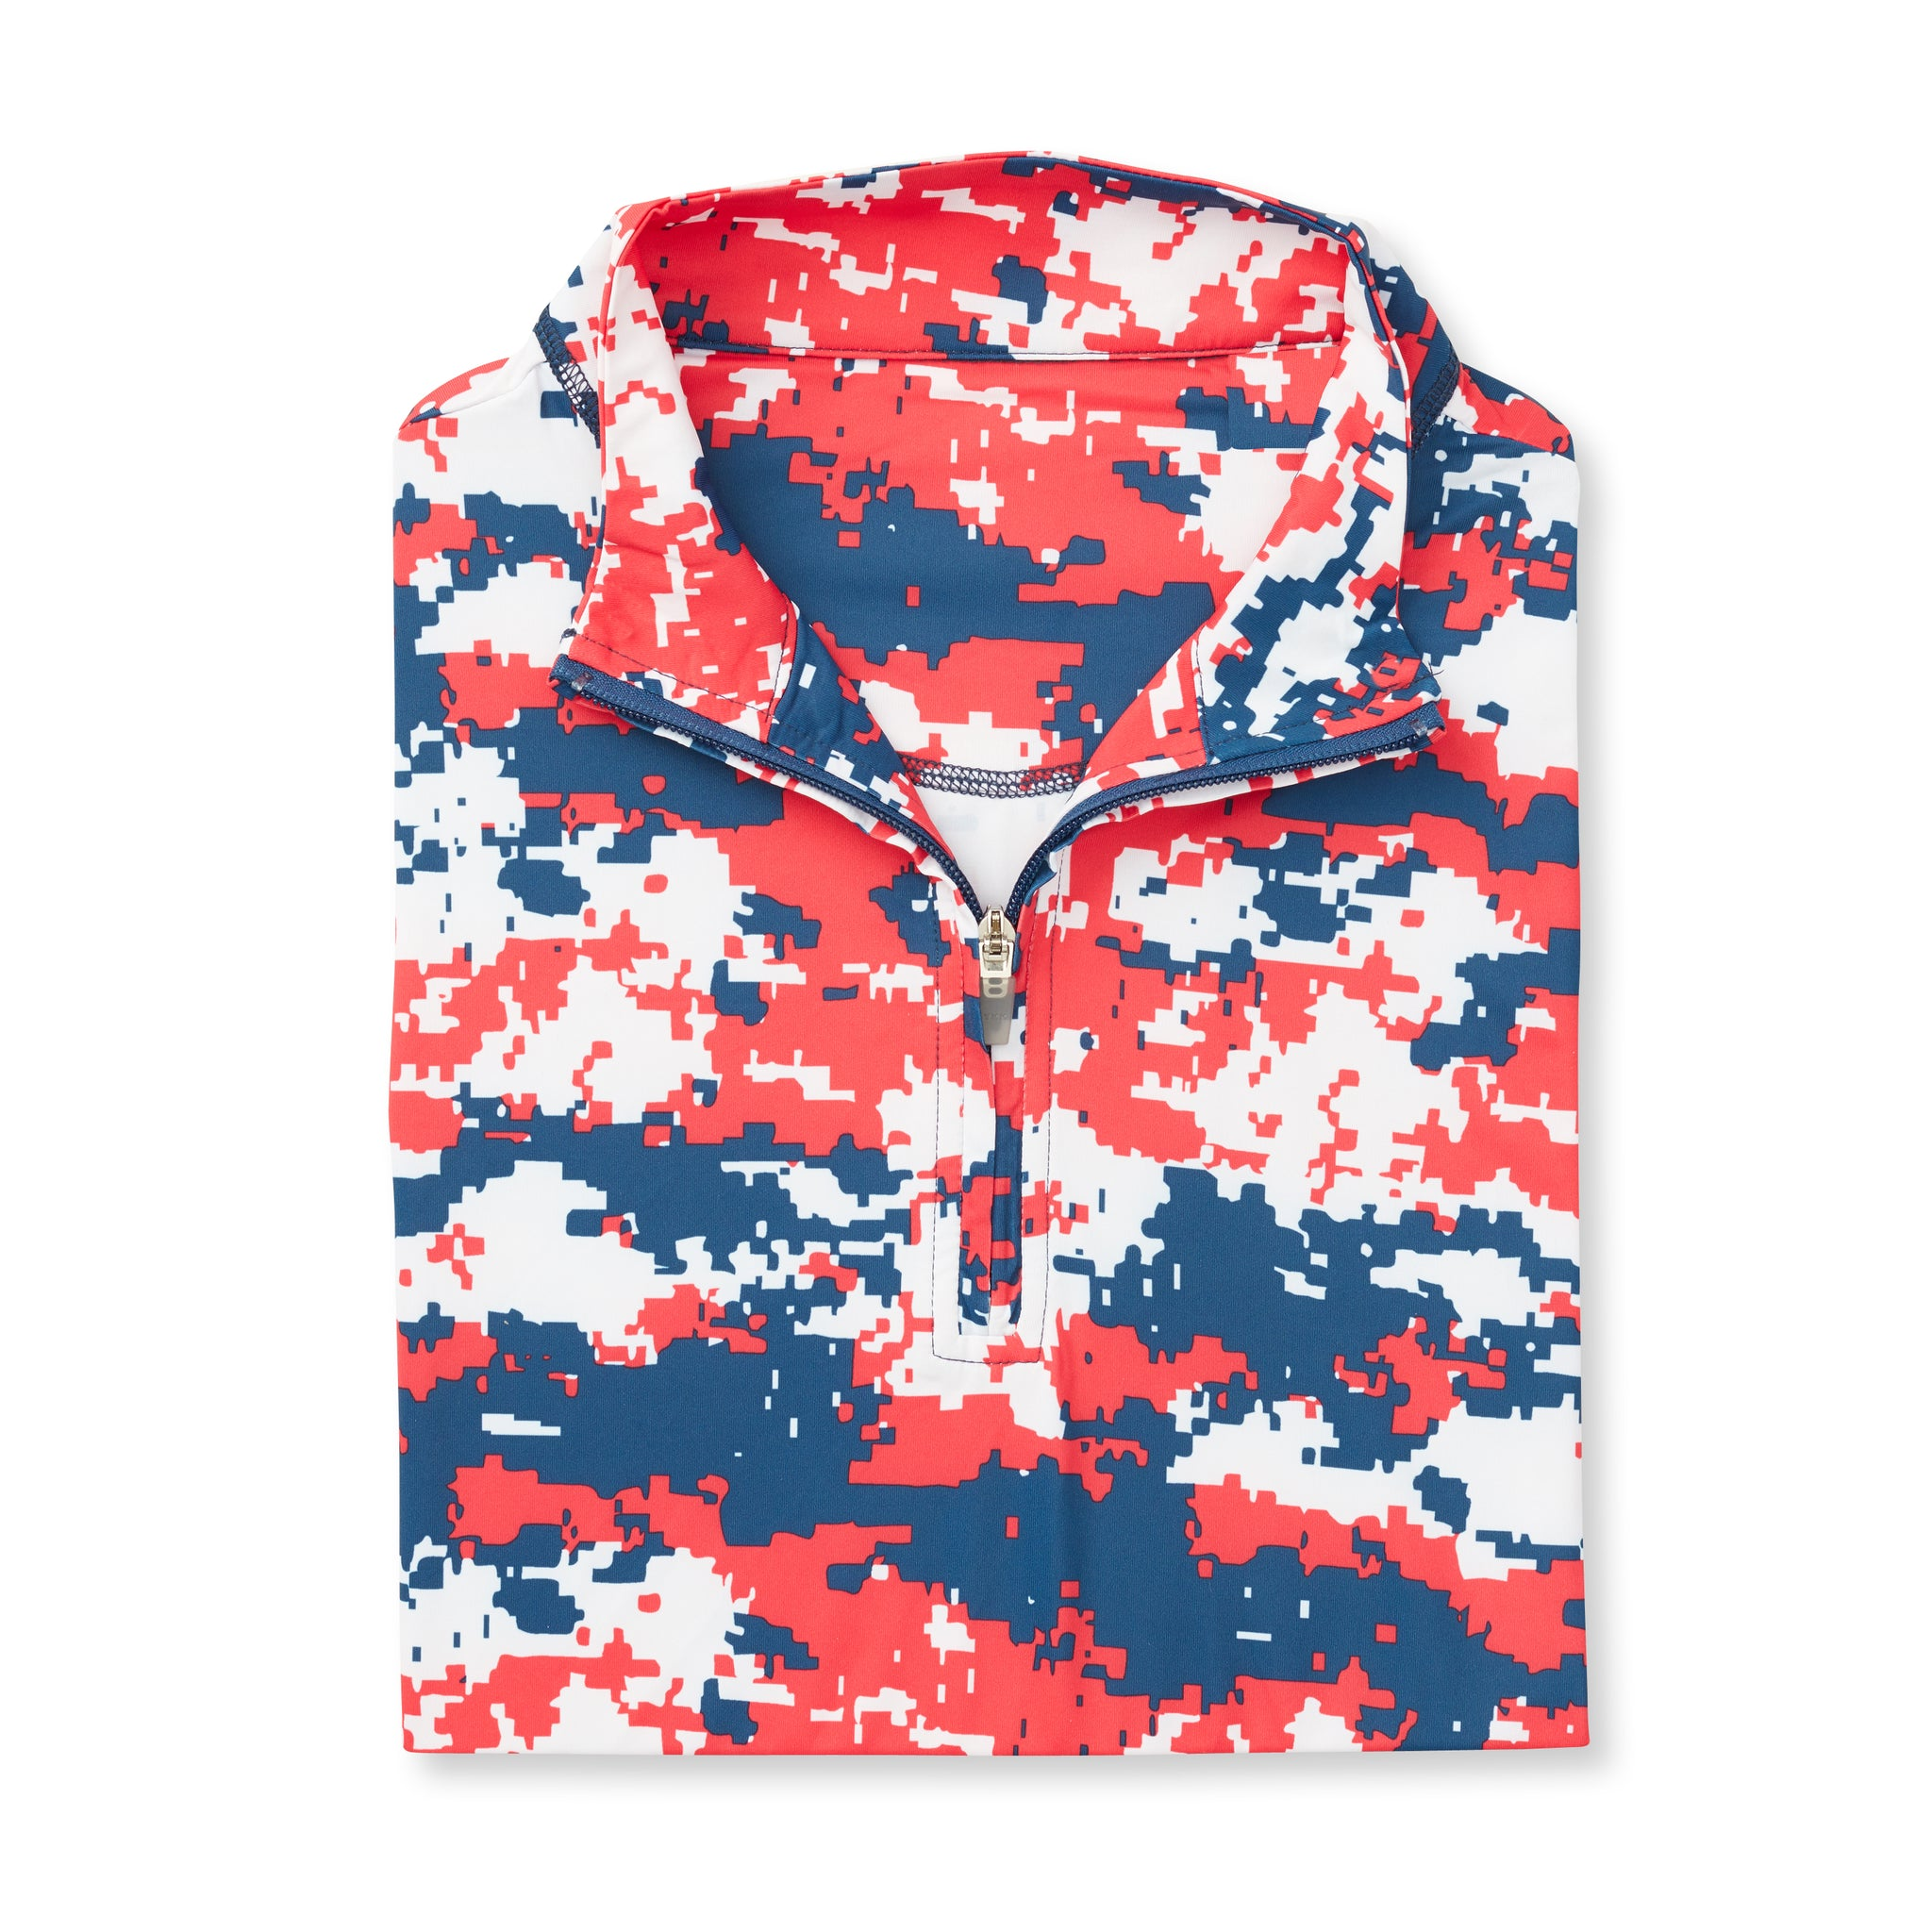 Digital Camo Half Zip - Red/White/Blue IS46005